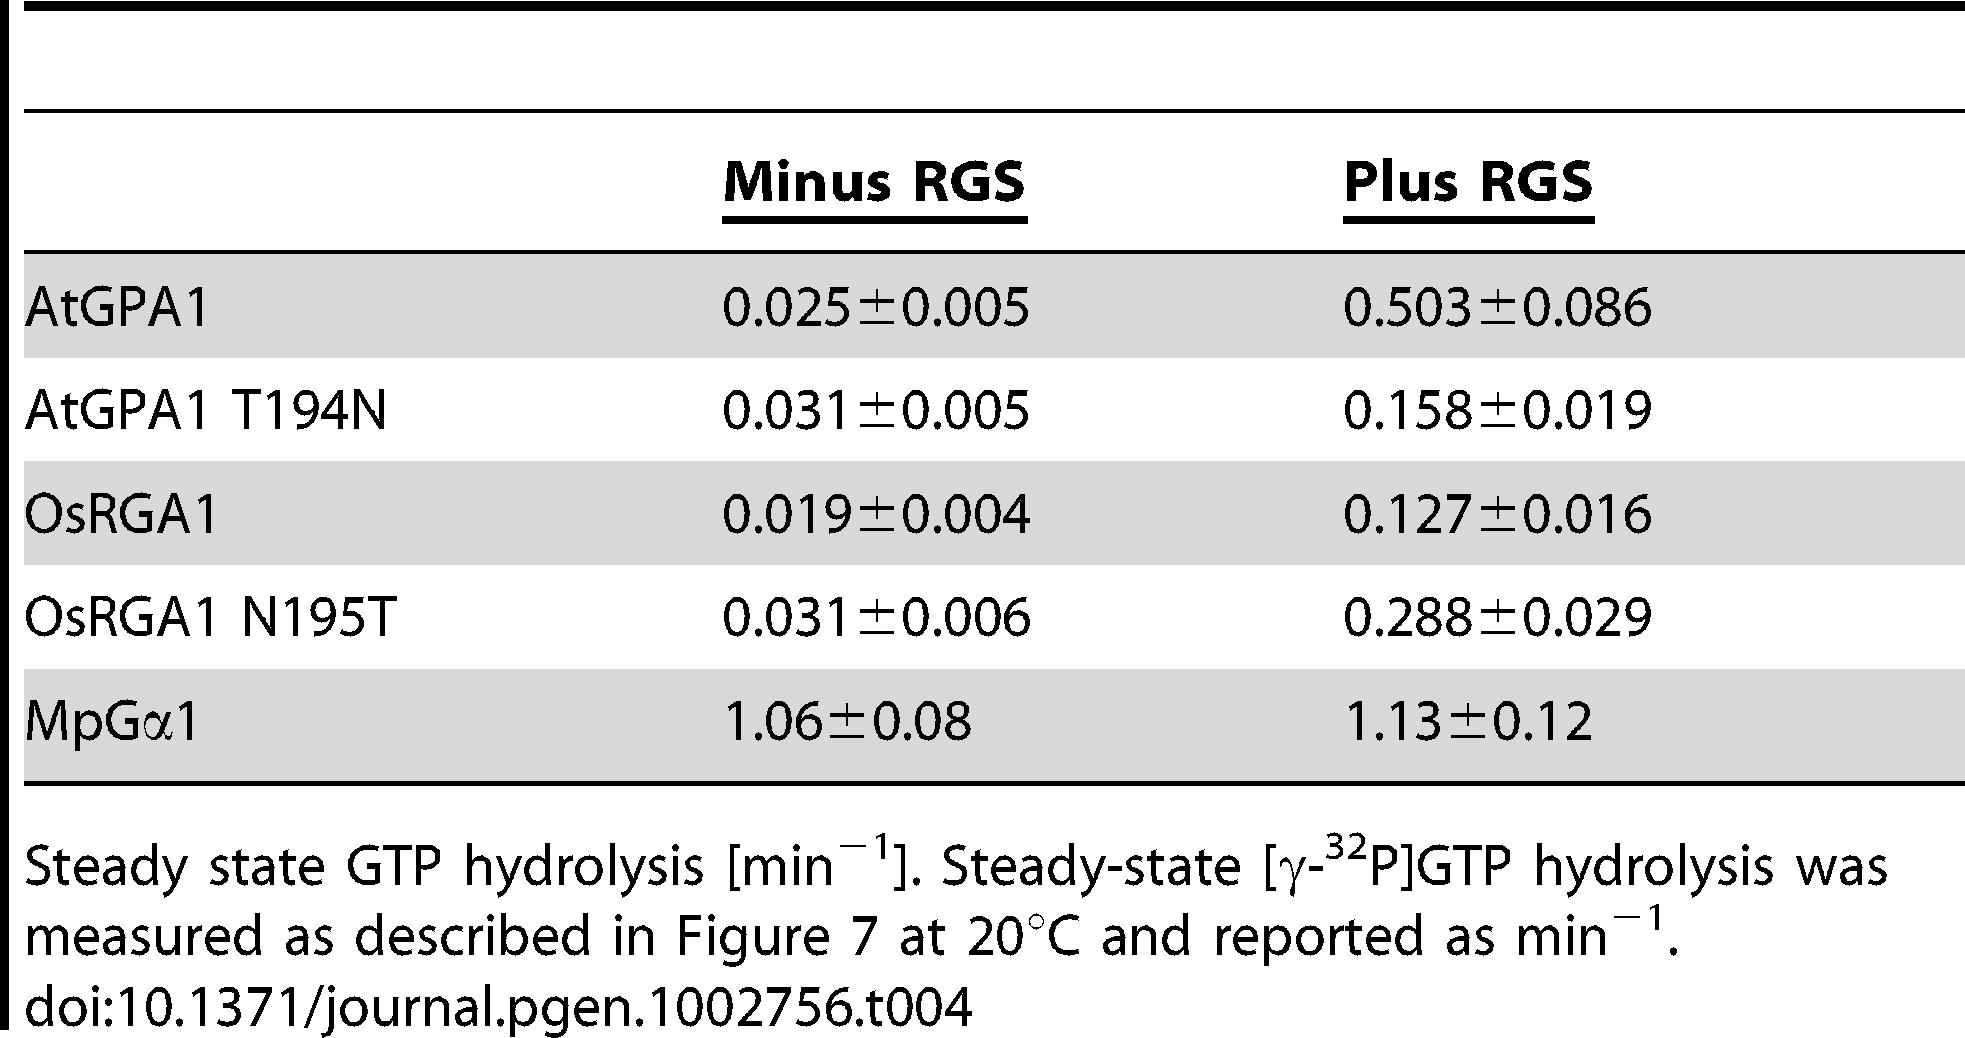 Rates of steady state GTP hydrolysis.